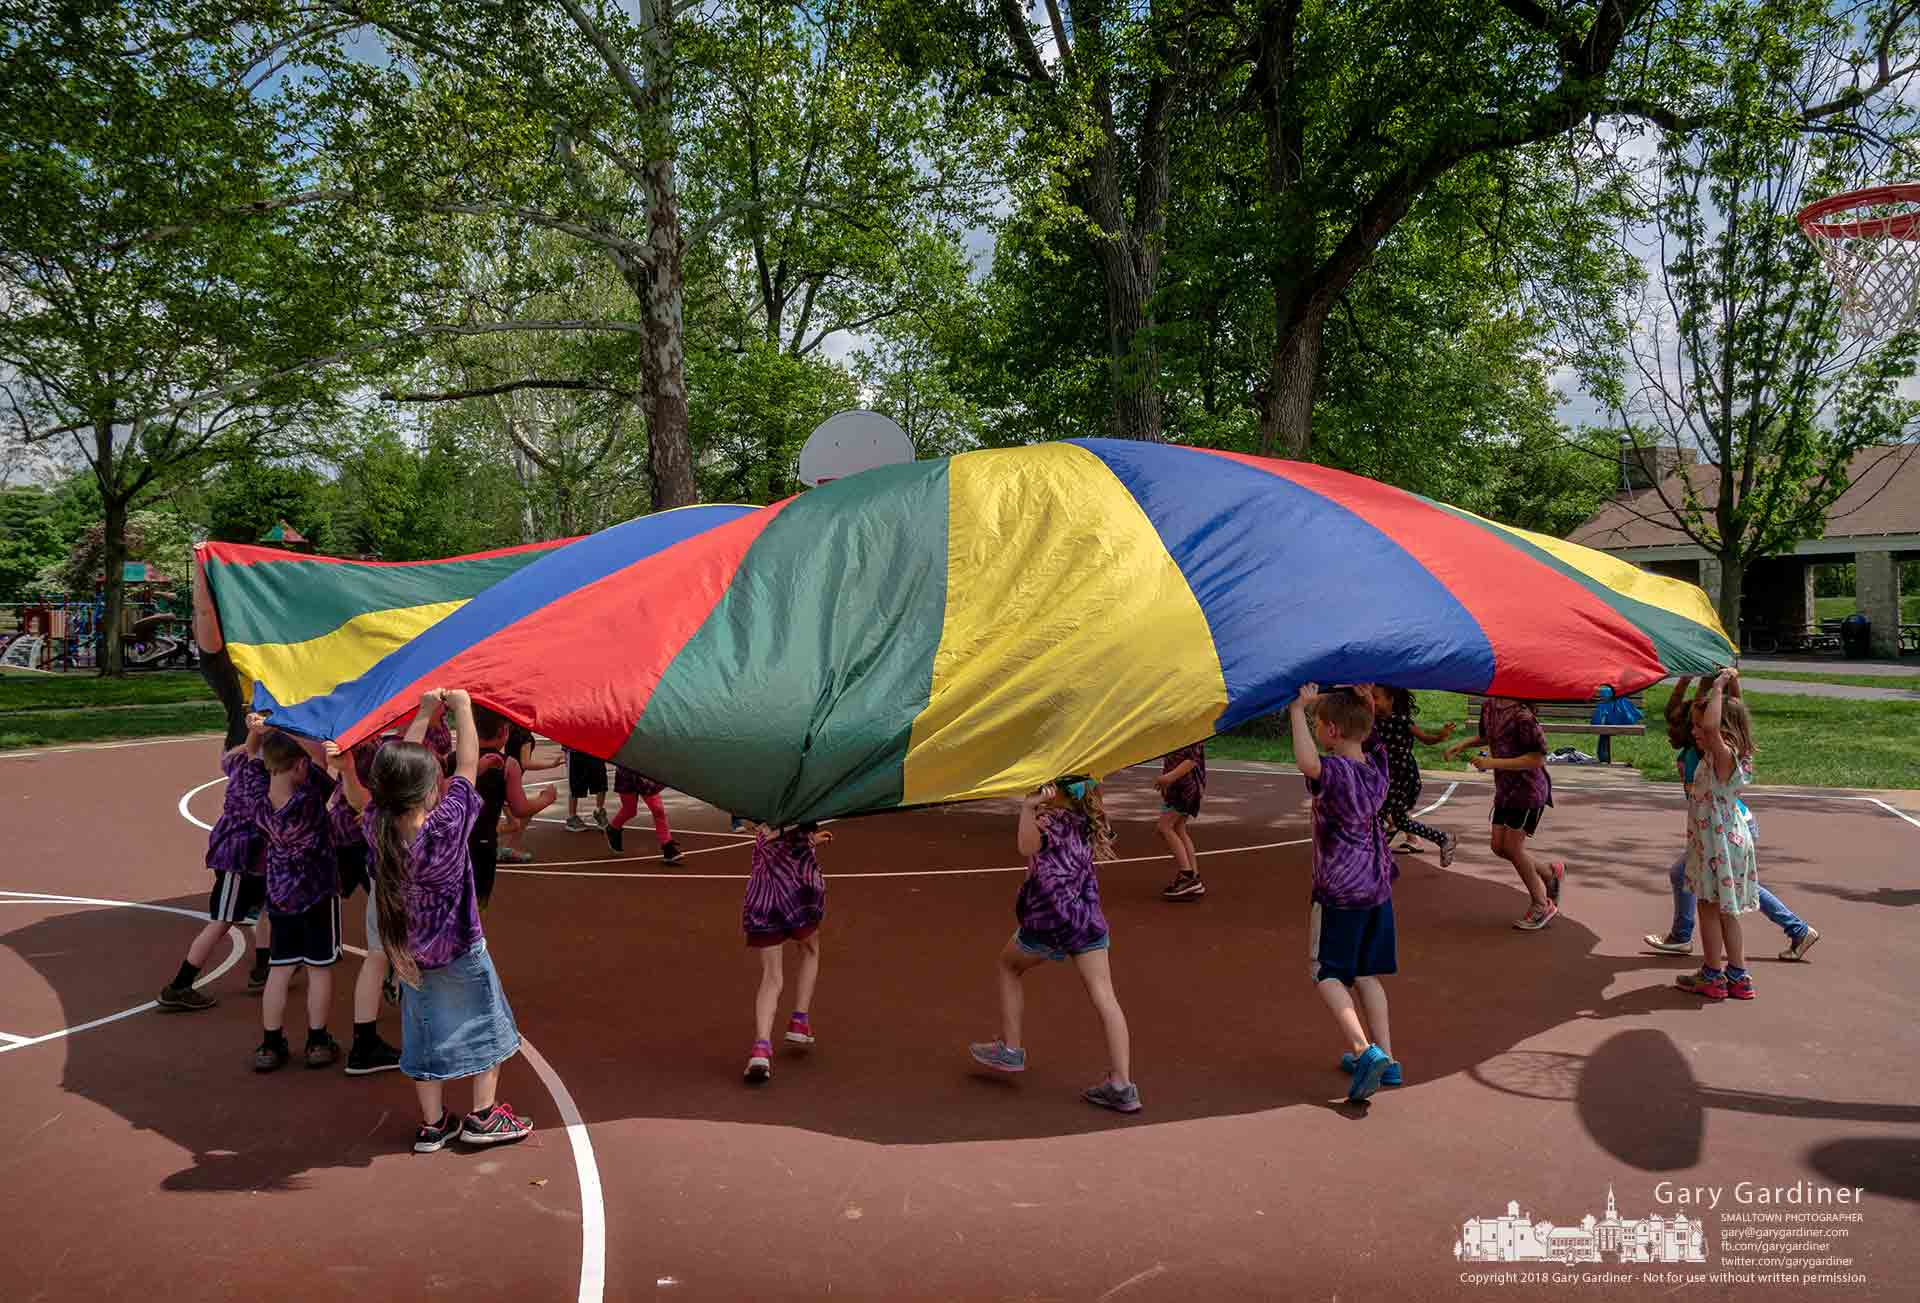 Hanby Elementary first graders run under an inflated parachute during their field trip to Alum Creek Park. My Final Photo for May 17, 2018.